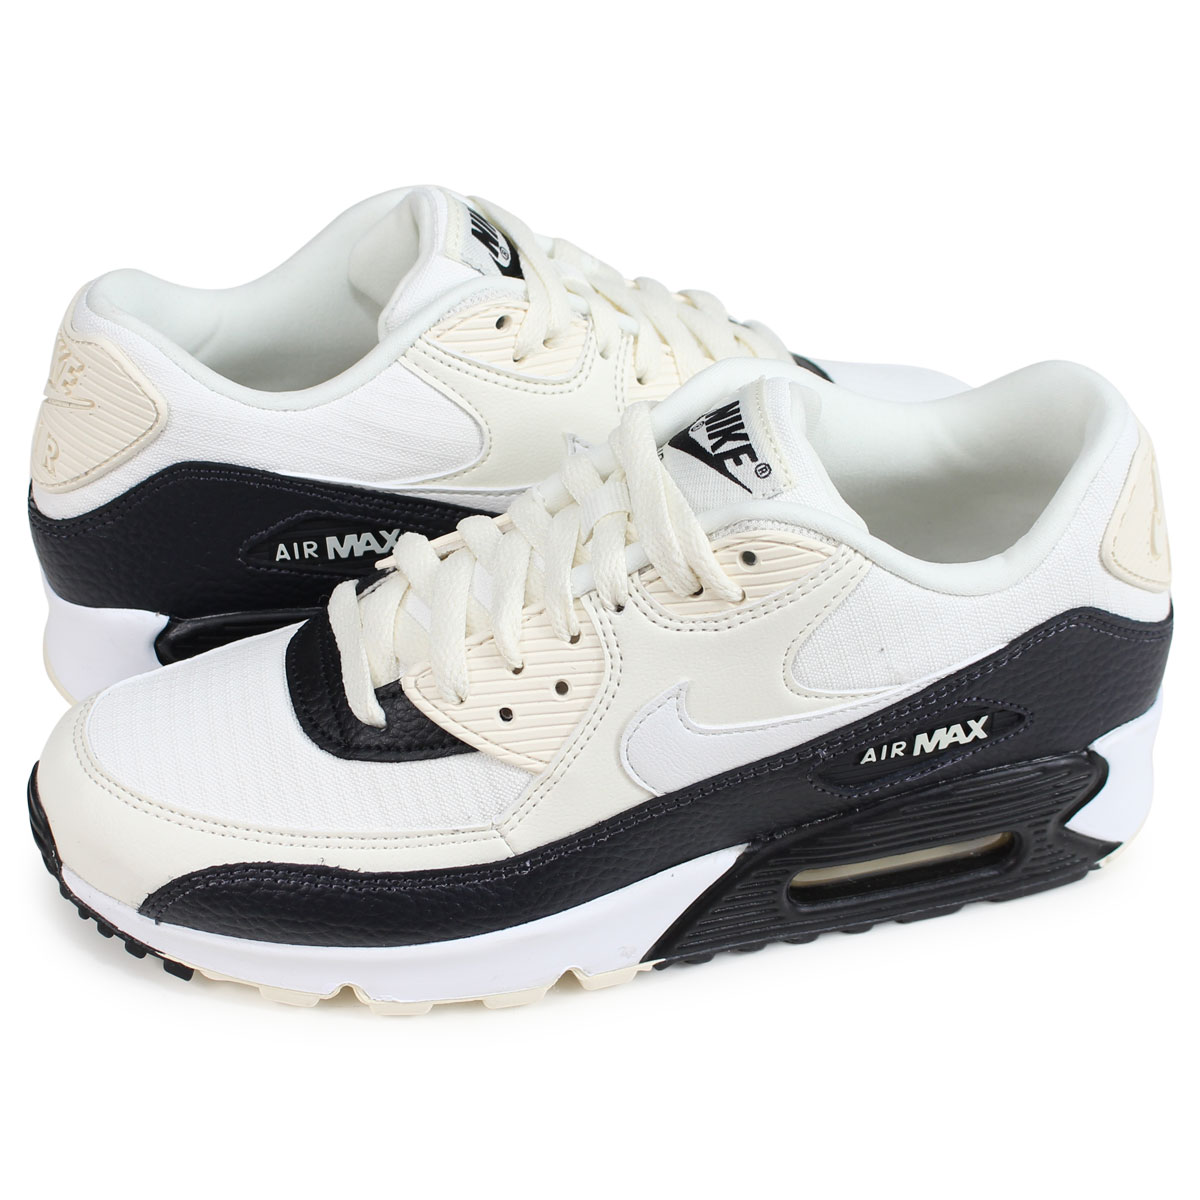 mieux aimé 4a3c2 281c9 Nike NIKE Air Max 90 sneakers Lady's men WMNS AIR MAX 90 ivory 325,213-138  [9/6 reentry load] [198]